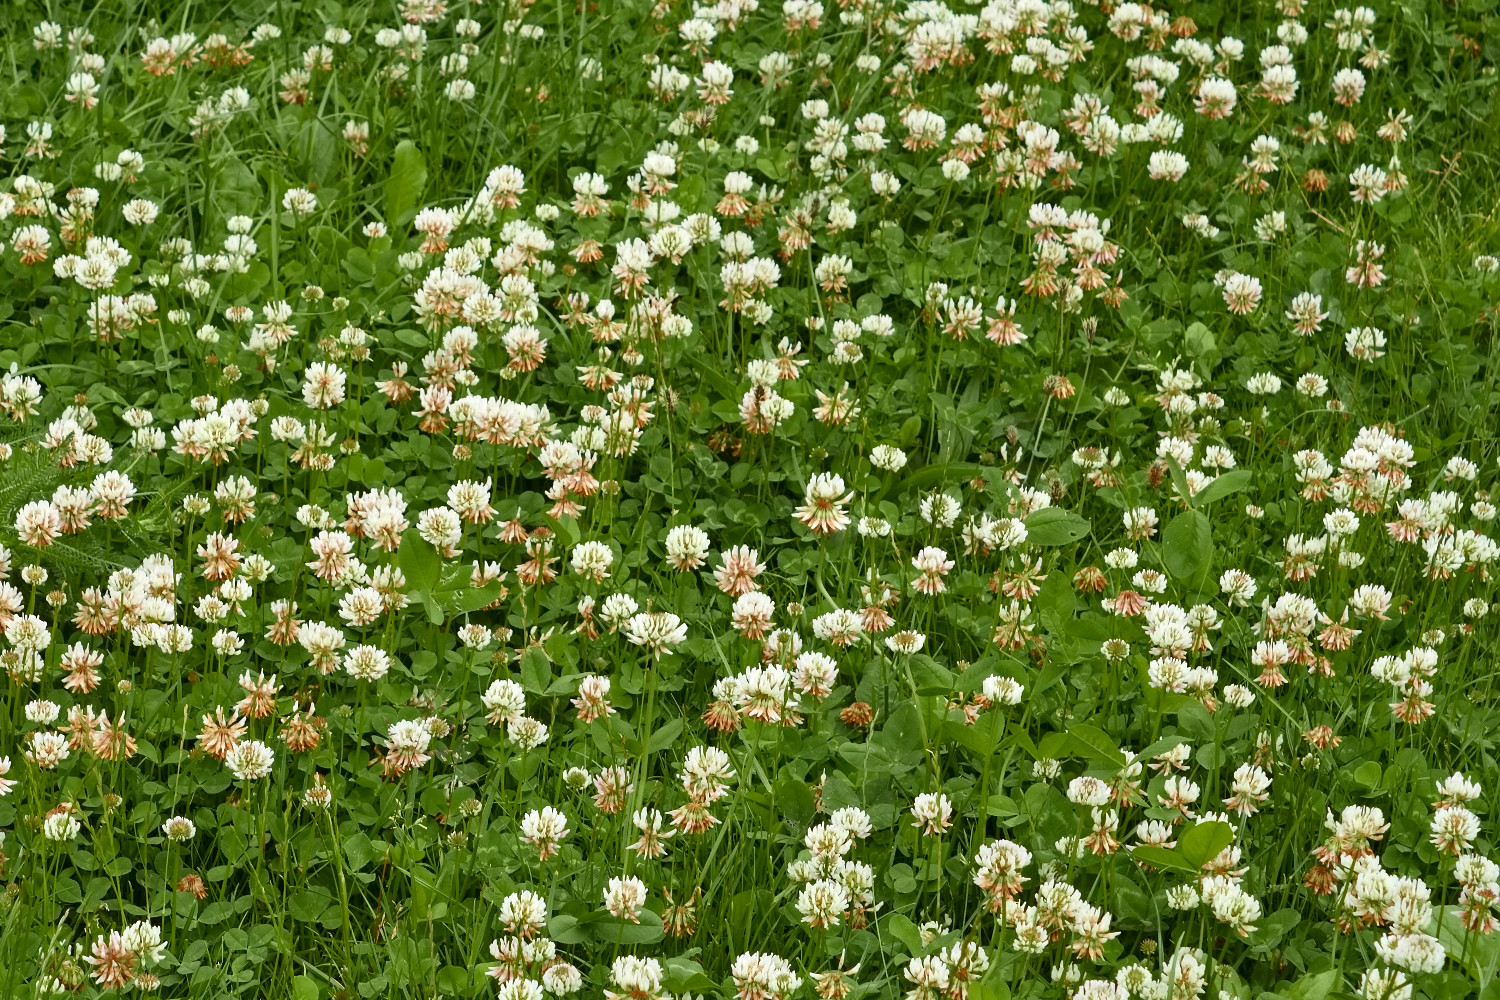 Weeds greenthumb lawn treatment service white clover dhlflorist Image collections